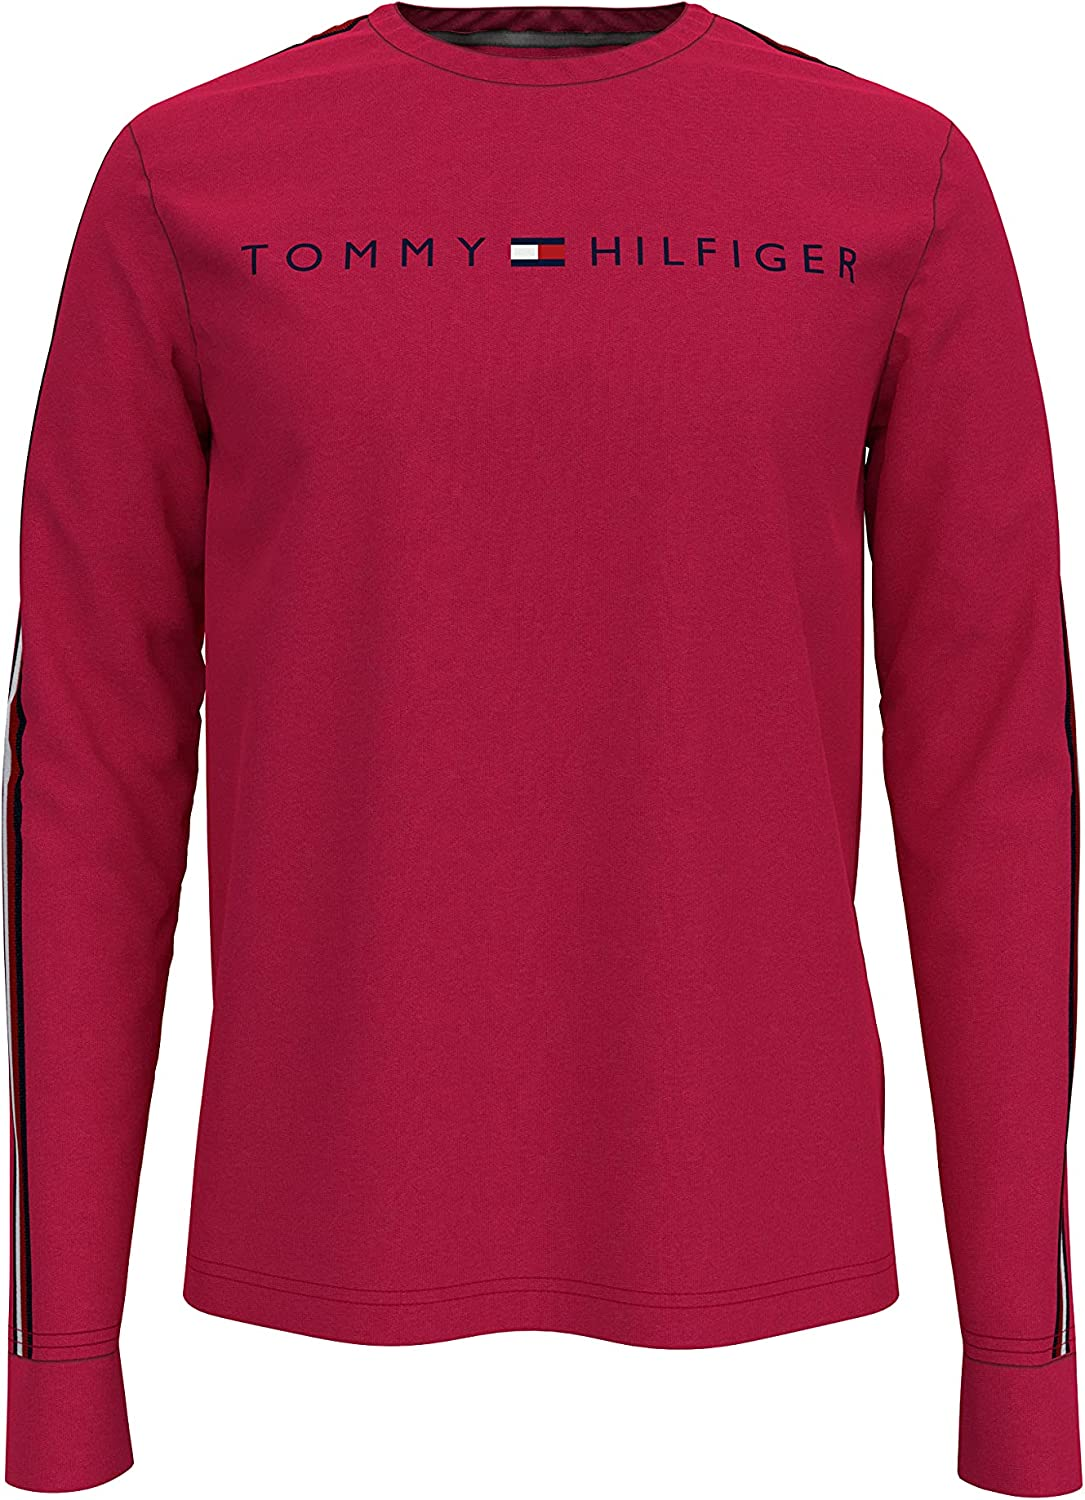 Tommy Hilfiger Men's Sale Special Price Long Store Cotton T Sleeve Shirt